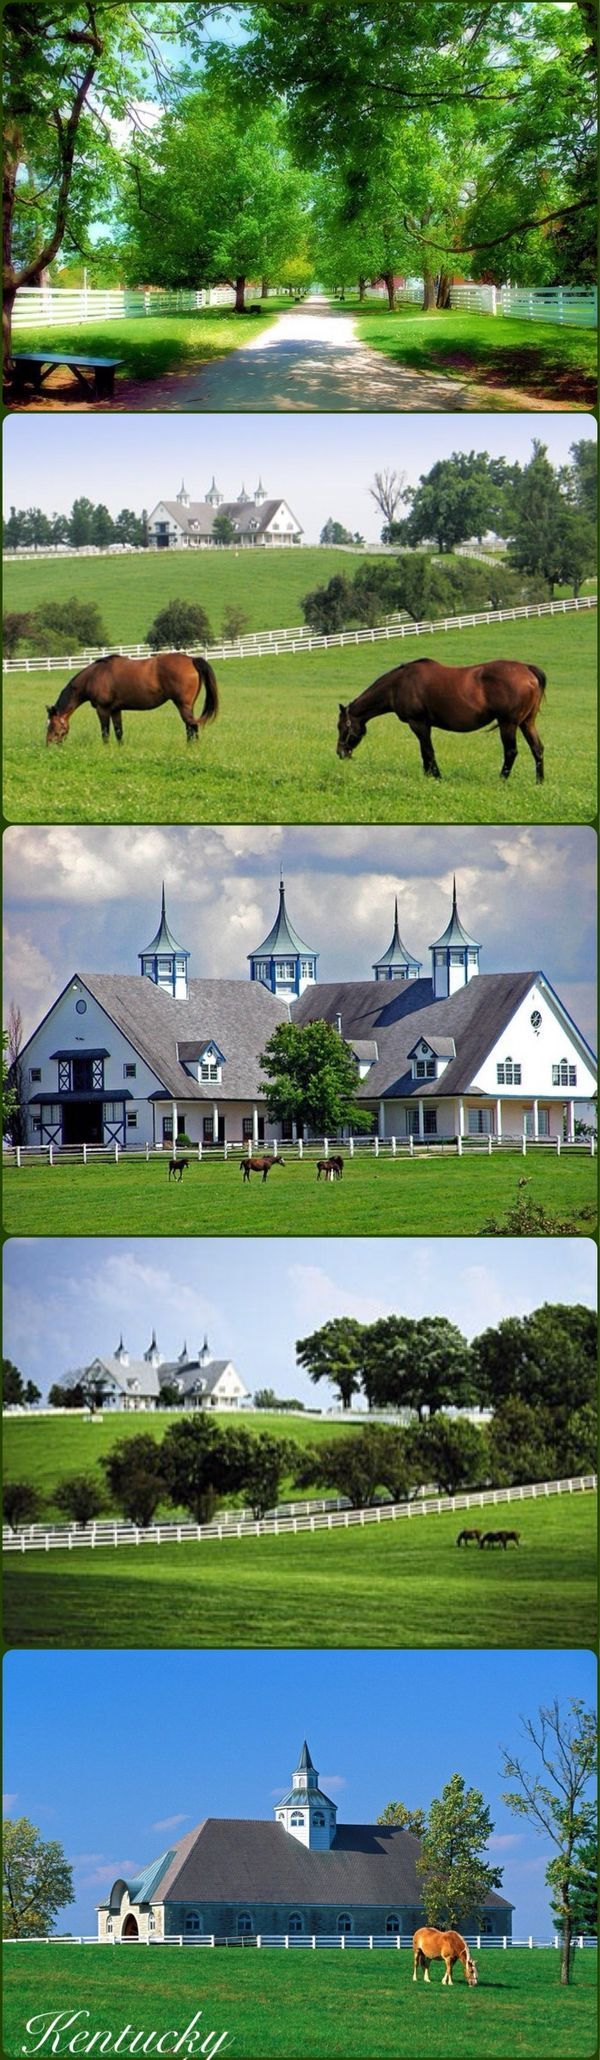 17 Best Images About Kentucky Horse Farms And Stables On